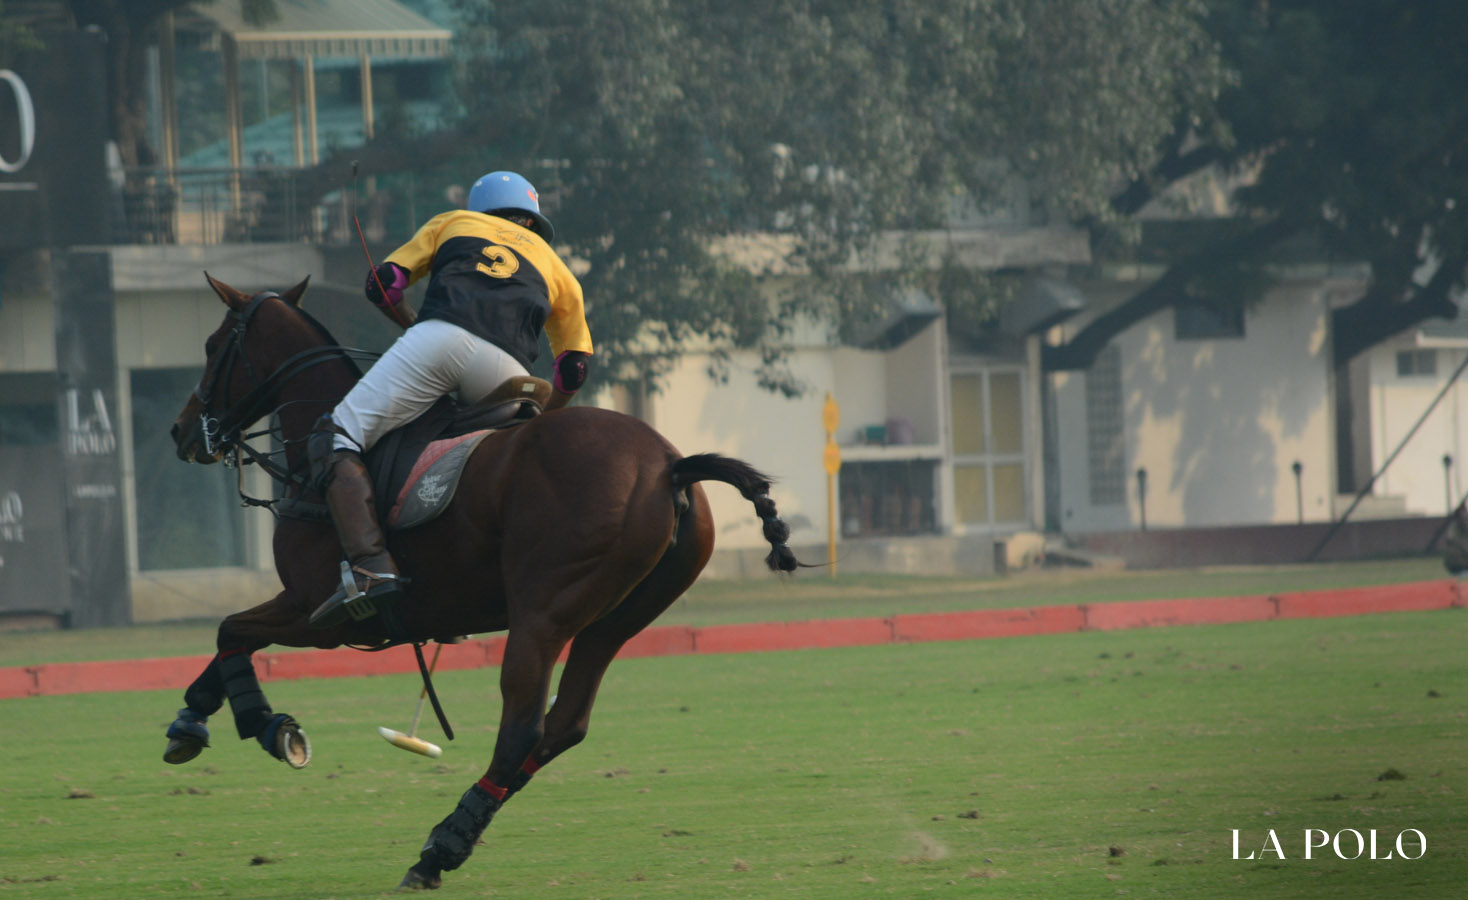 polo player field